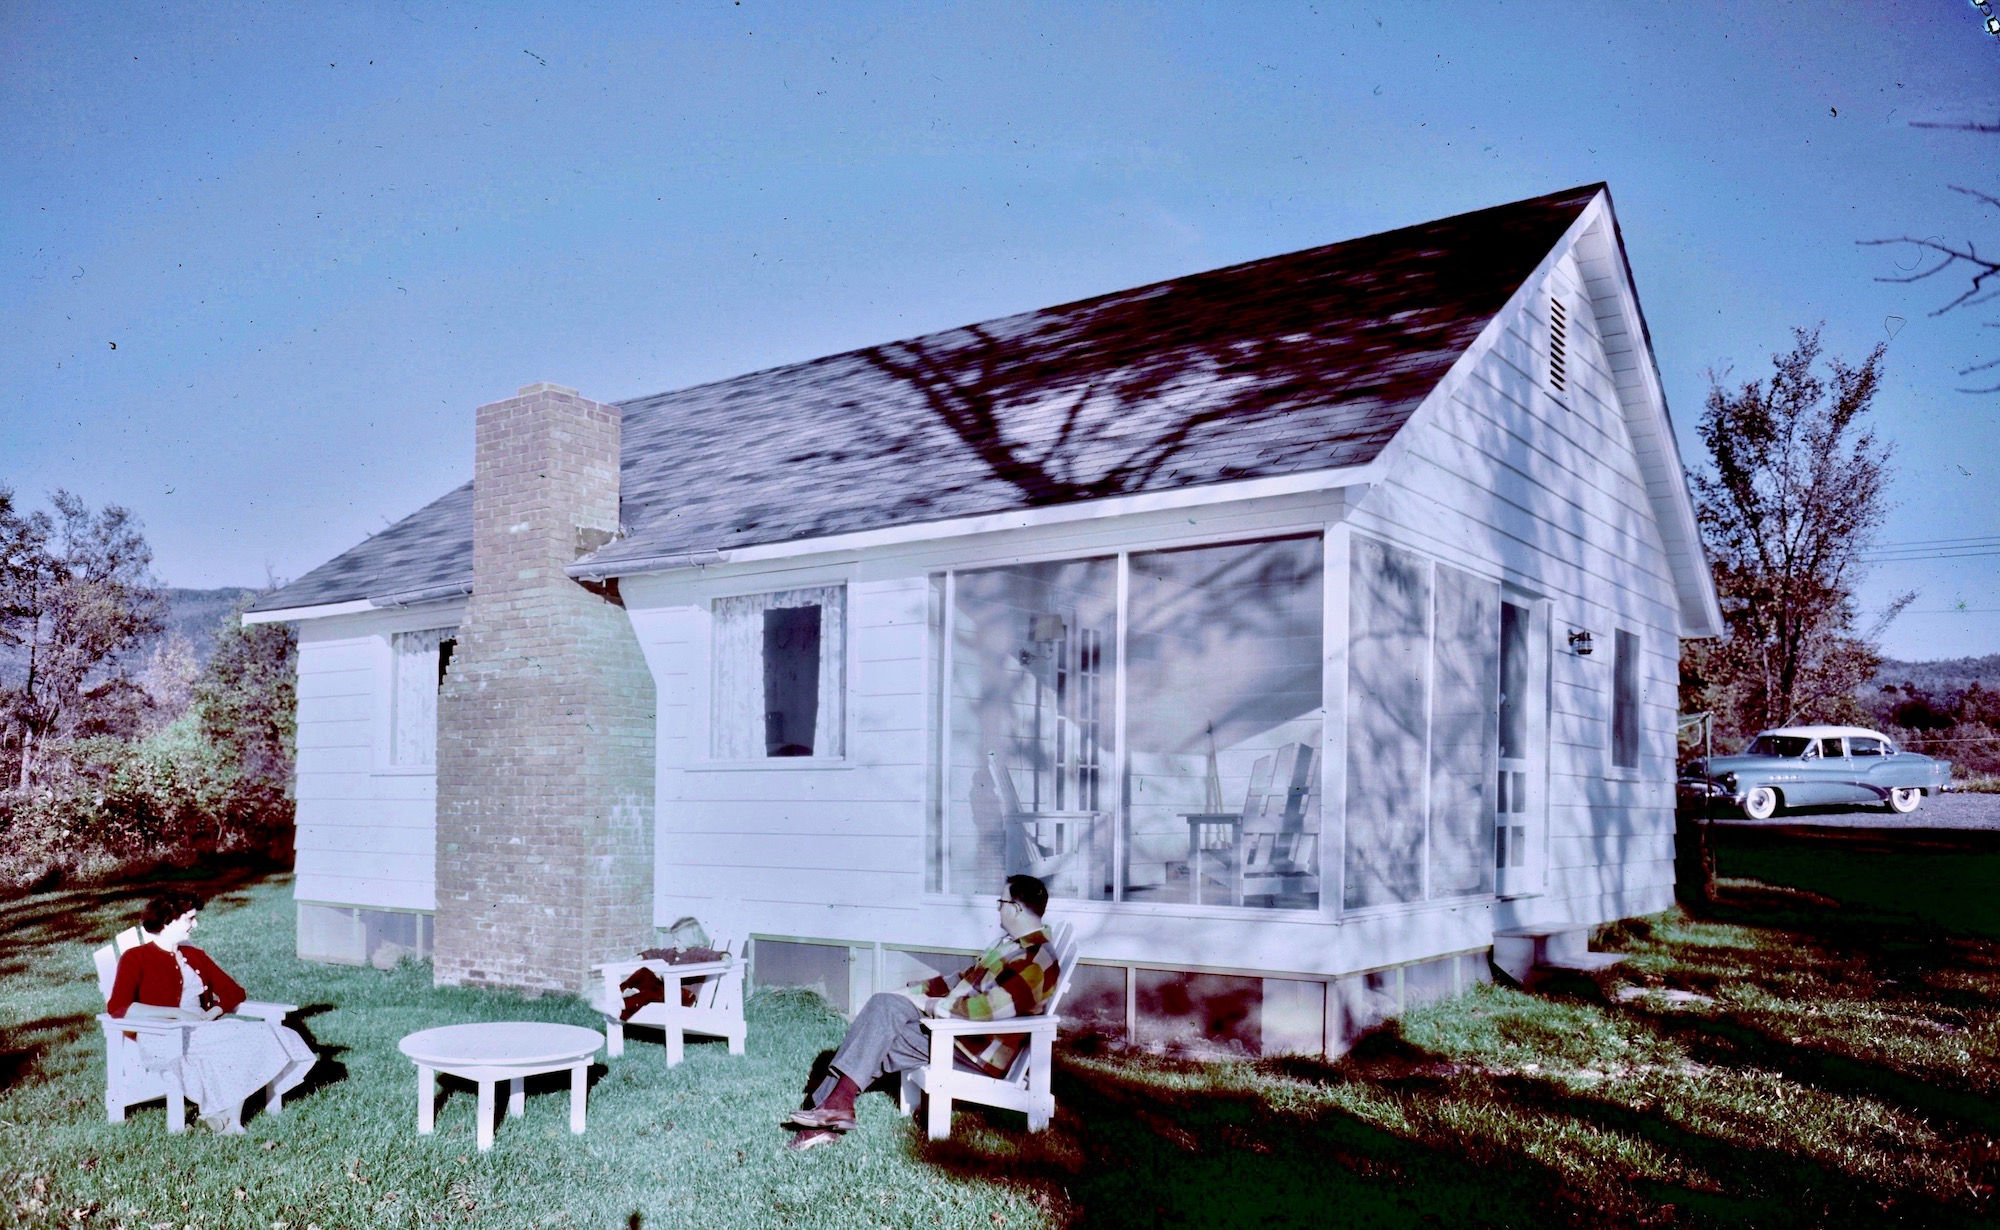 Takundewide Cottage #3 in 1954